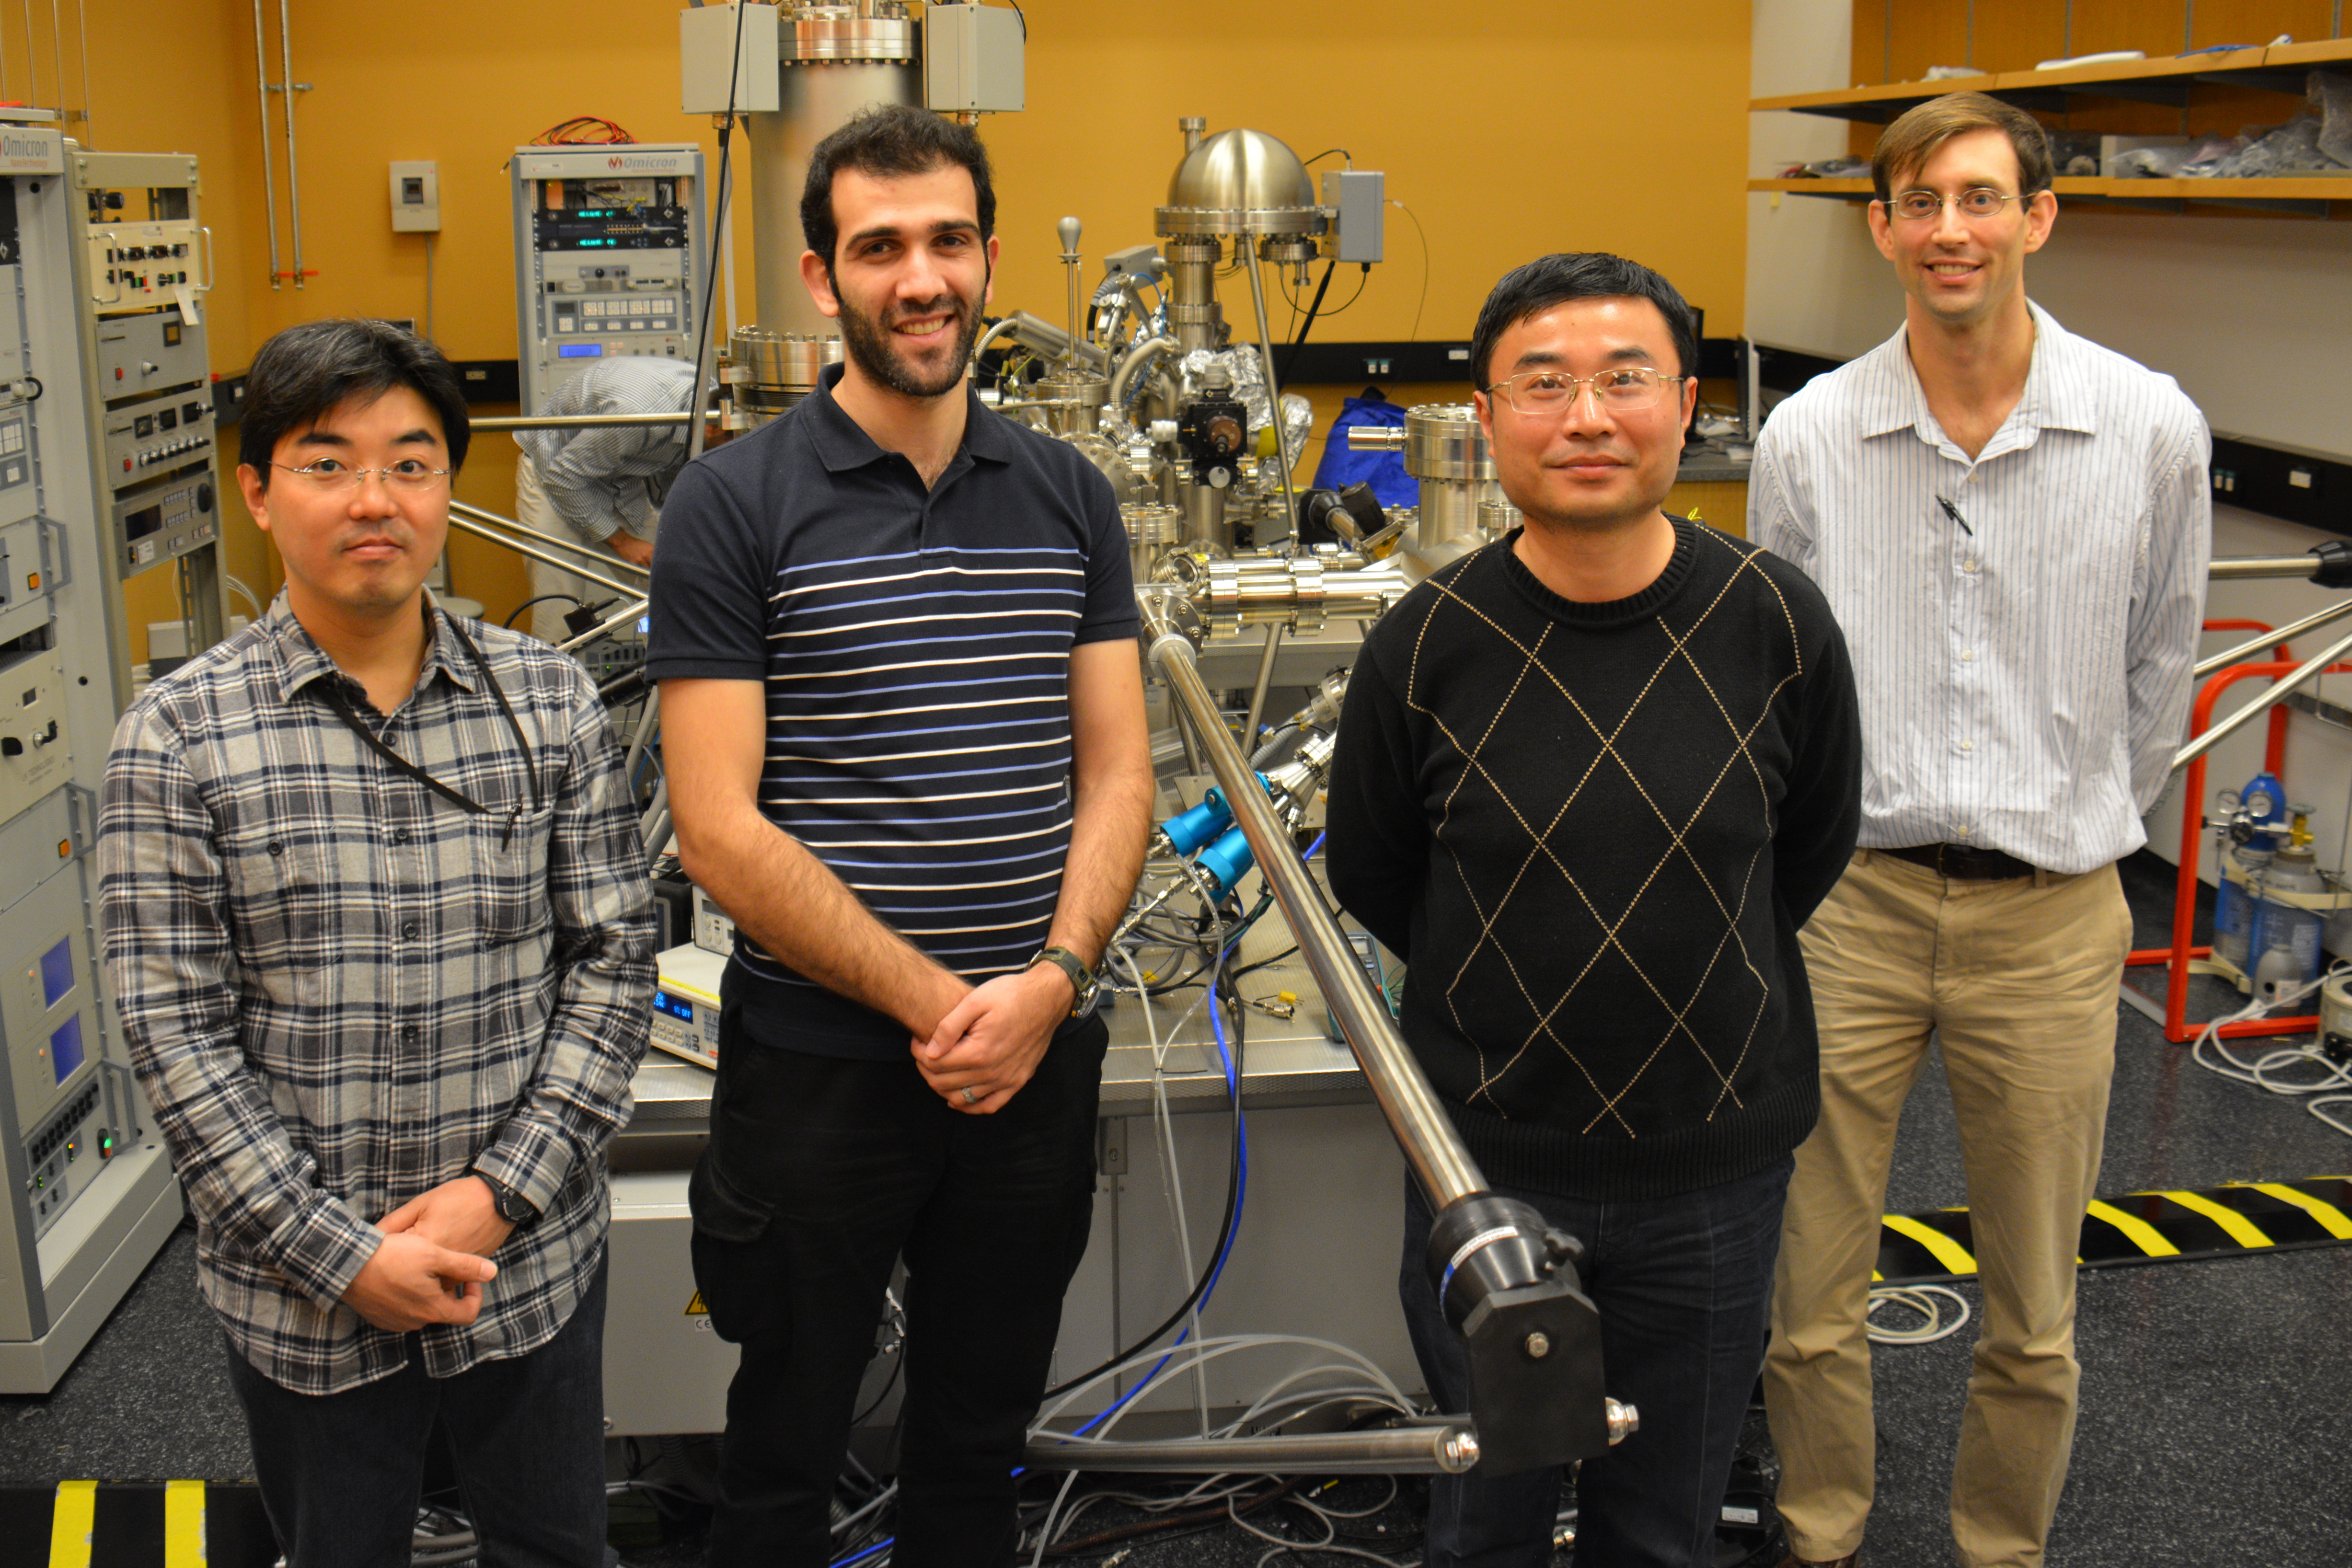 Members of OIST Energy Materials and Surface Sciences Unit